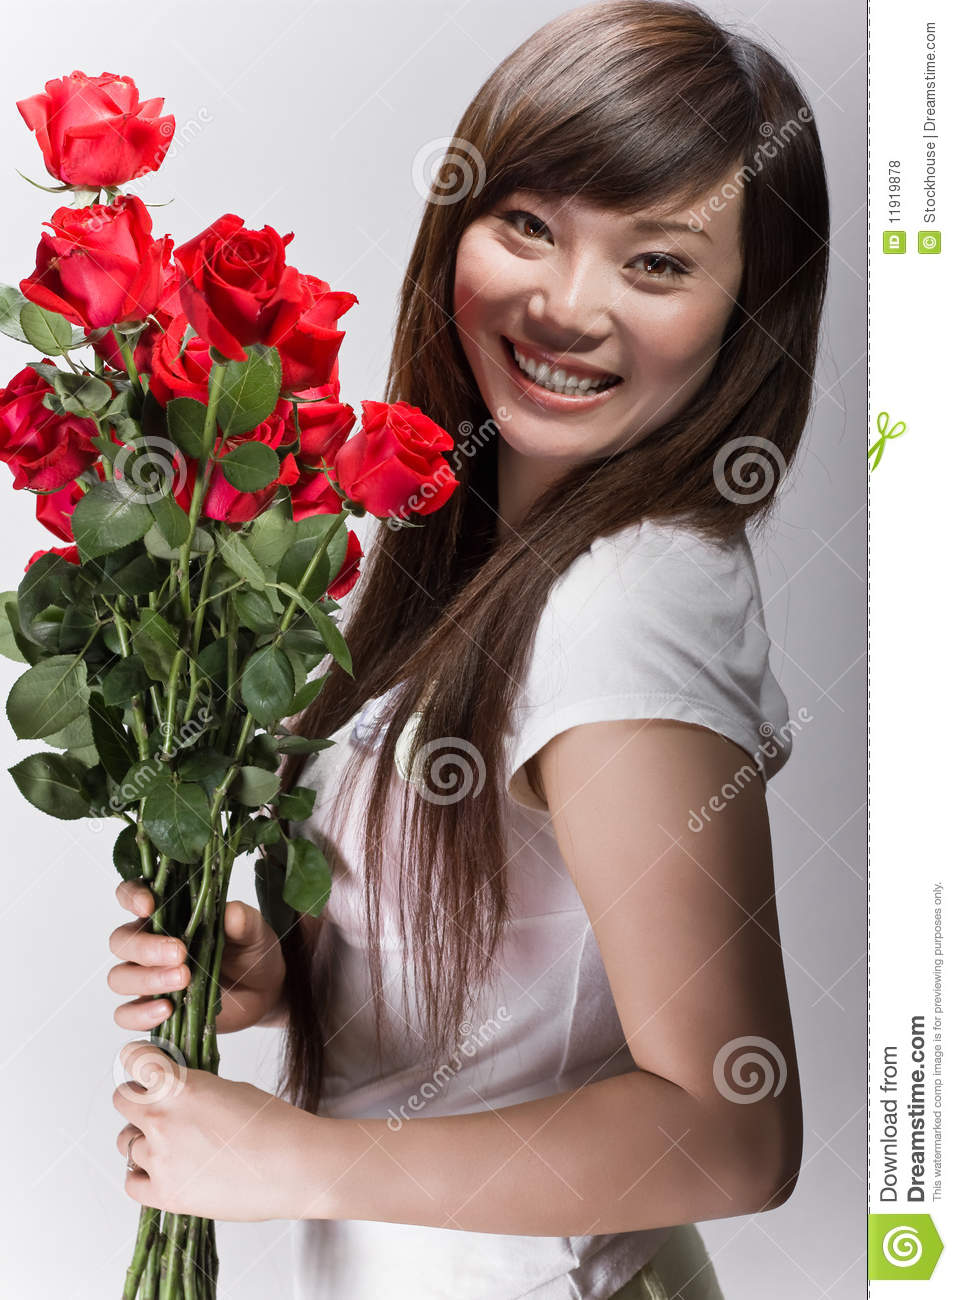 rose asian girl personals Women from asia seeking men online for love and marriage thai brides, chinese brides, vietnamese brides find your asian mail order bride here.